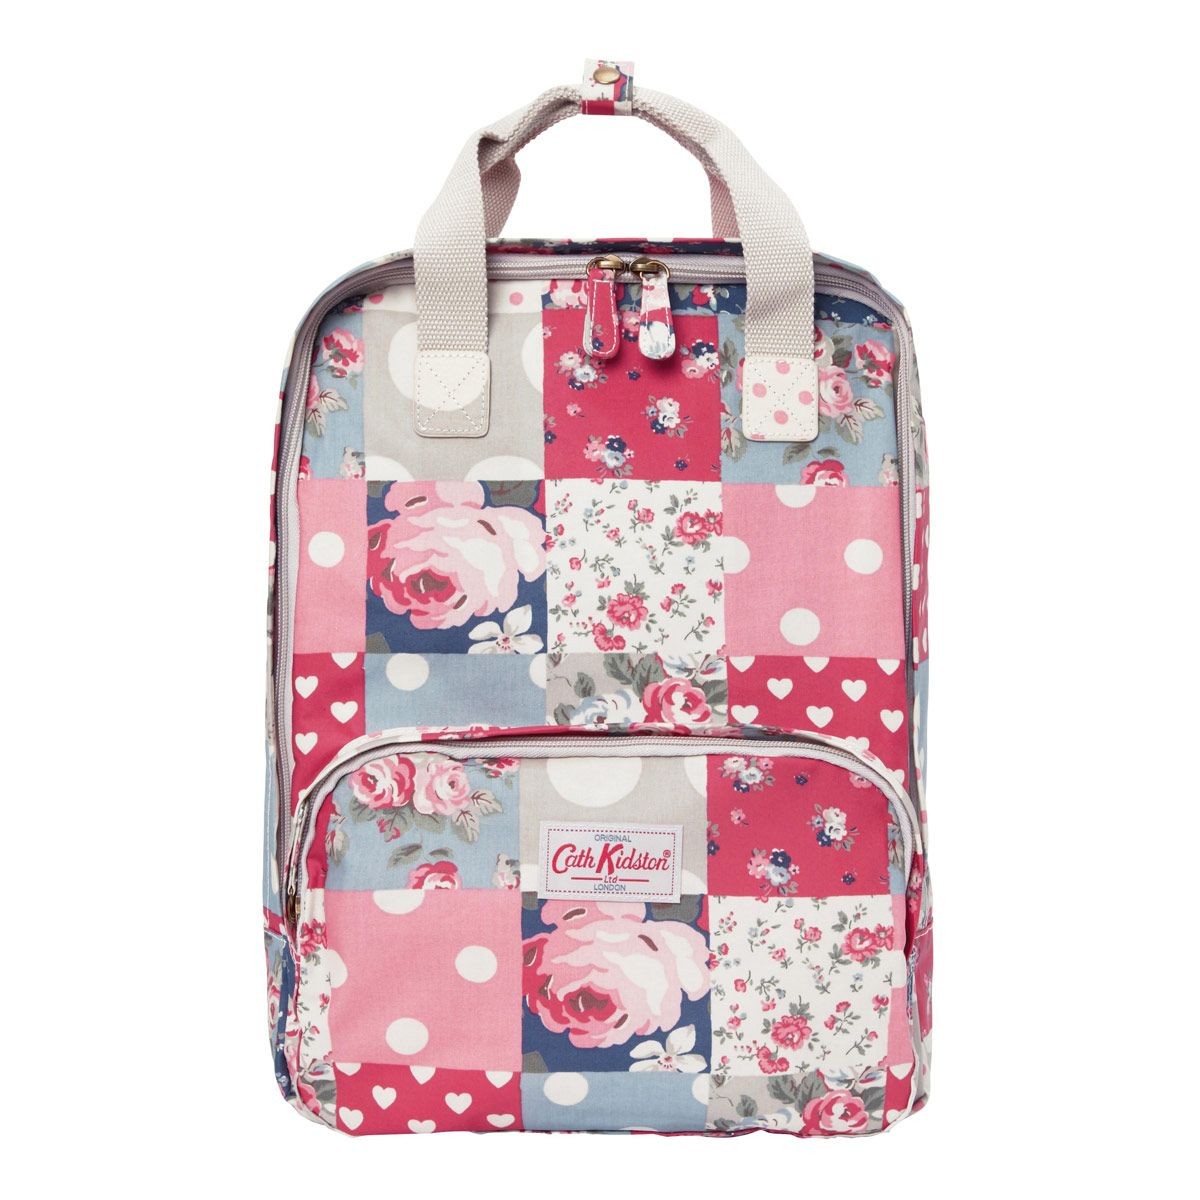 4a77f14a8b670 Patchwork Backpack | CathKidston Backpacks available in a variety of ...